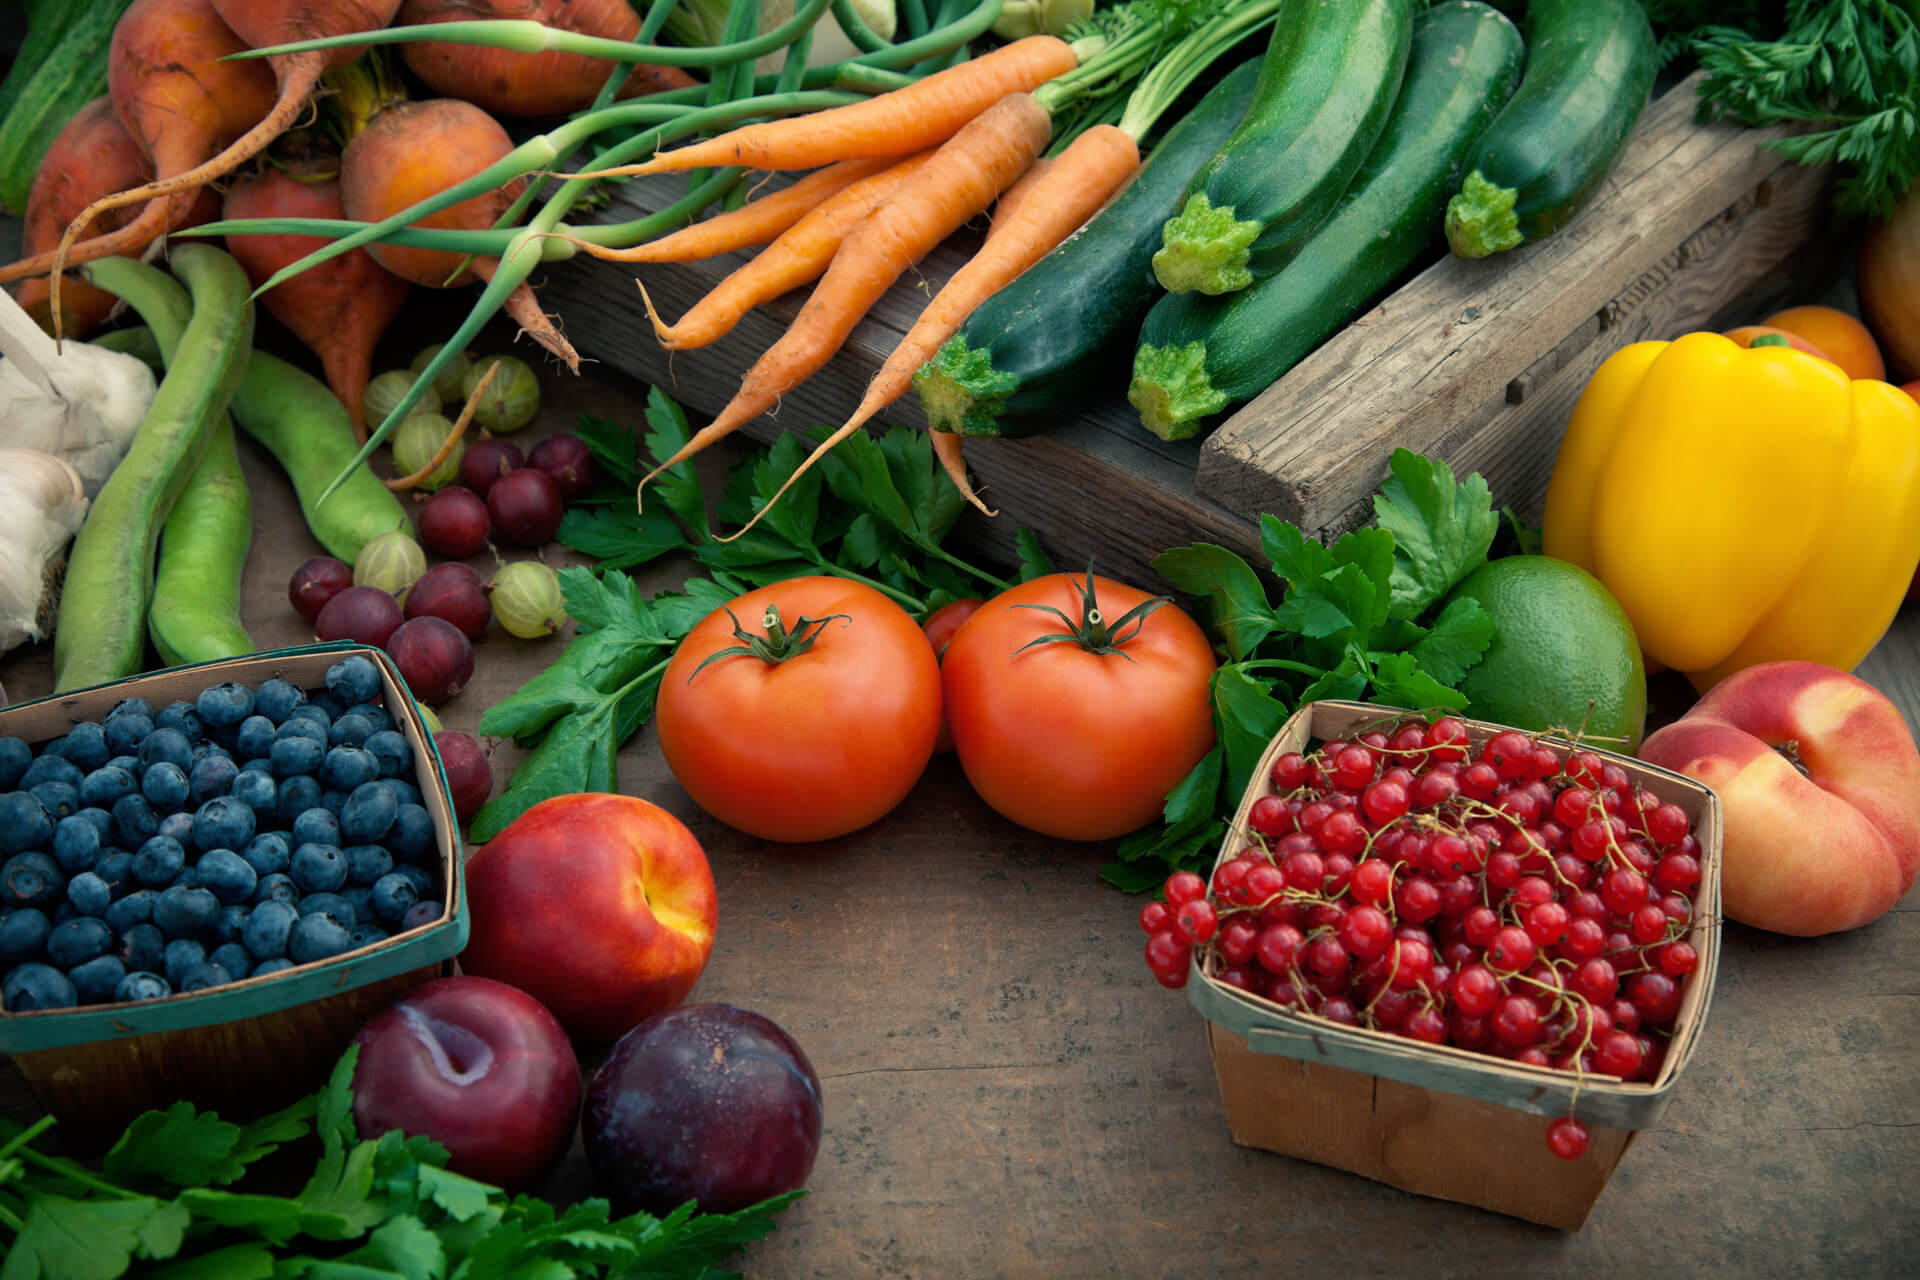 Grow Fresh Produce In Your Own Backyard With Seeds And Seedlings From Jolly Lane Greenhouse We Can Help You Get Vegetable Gardening Started So